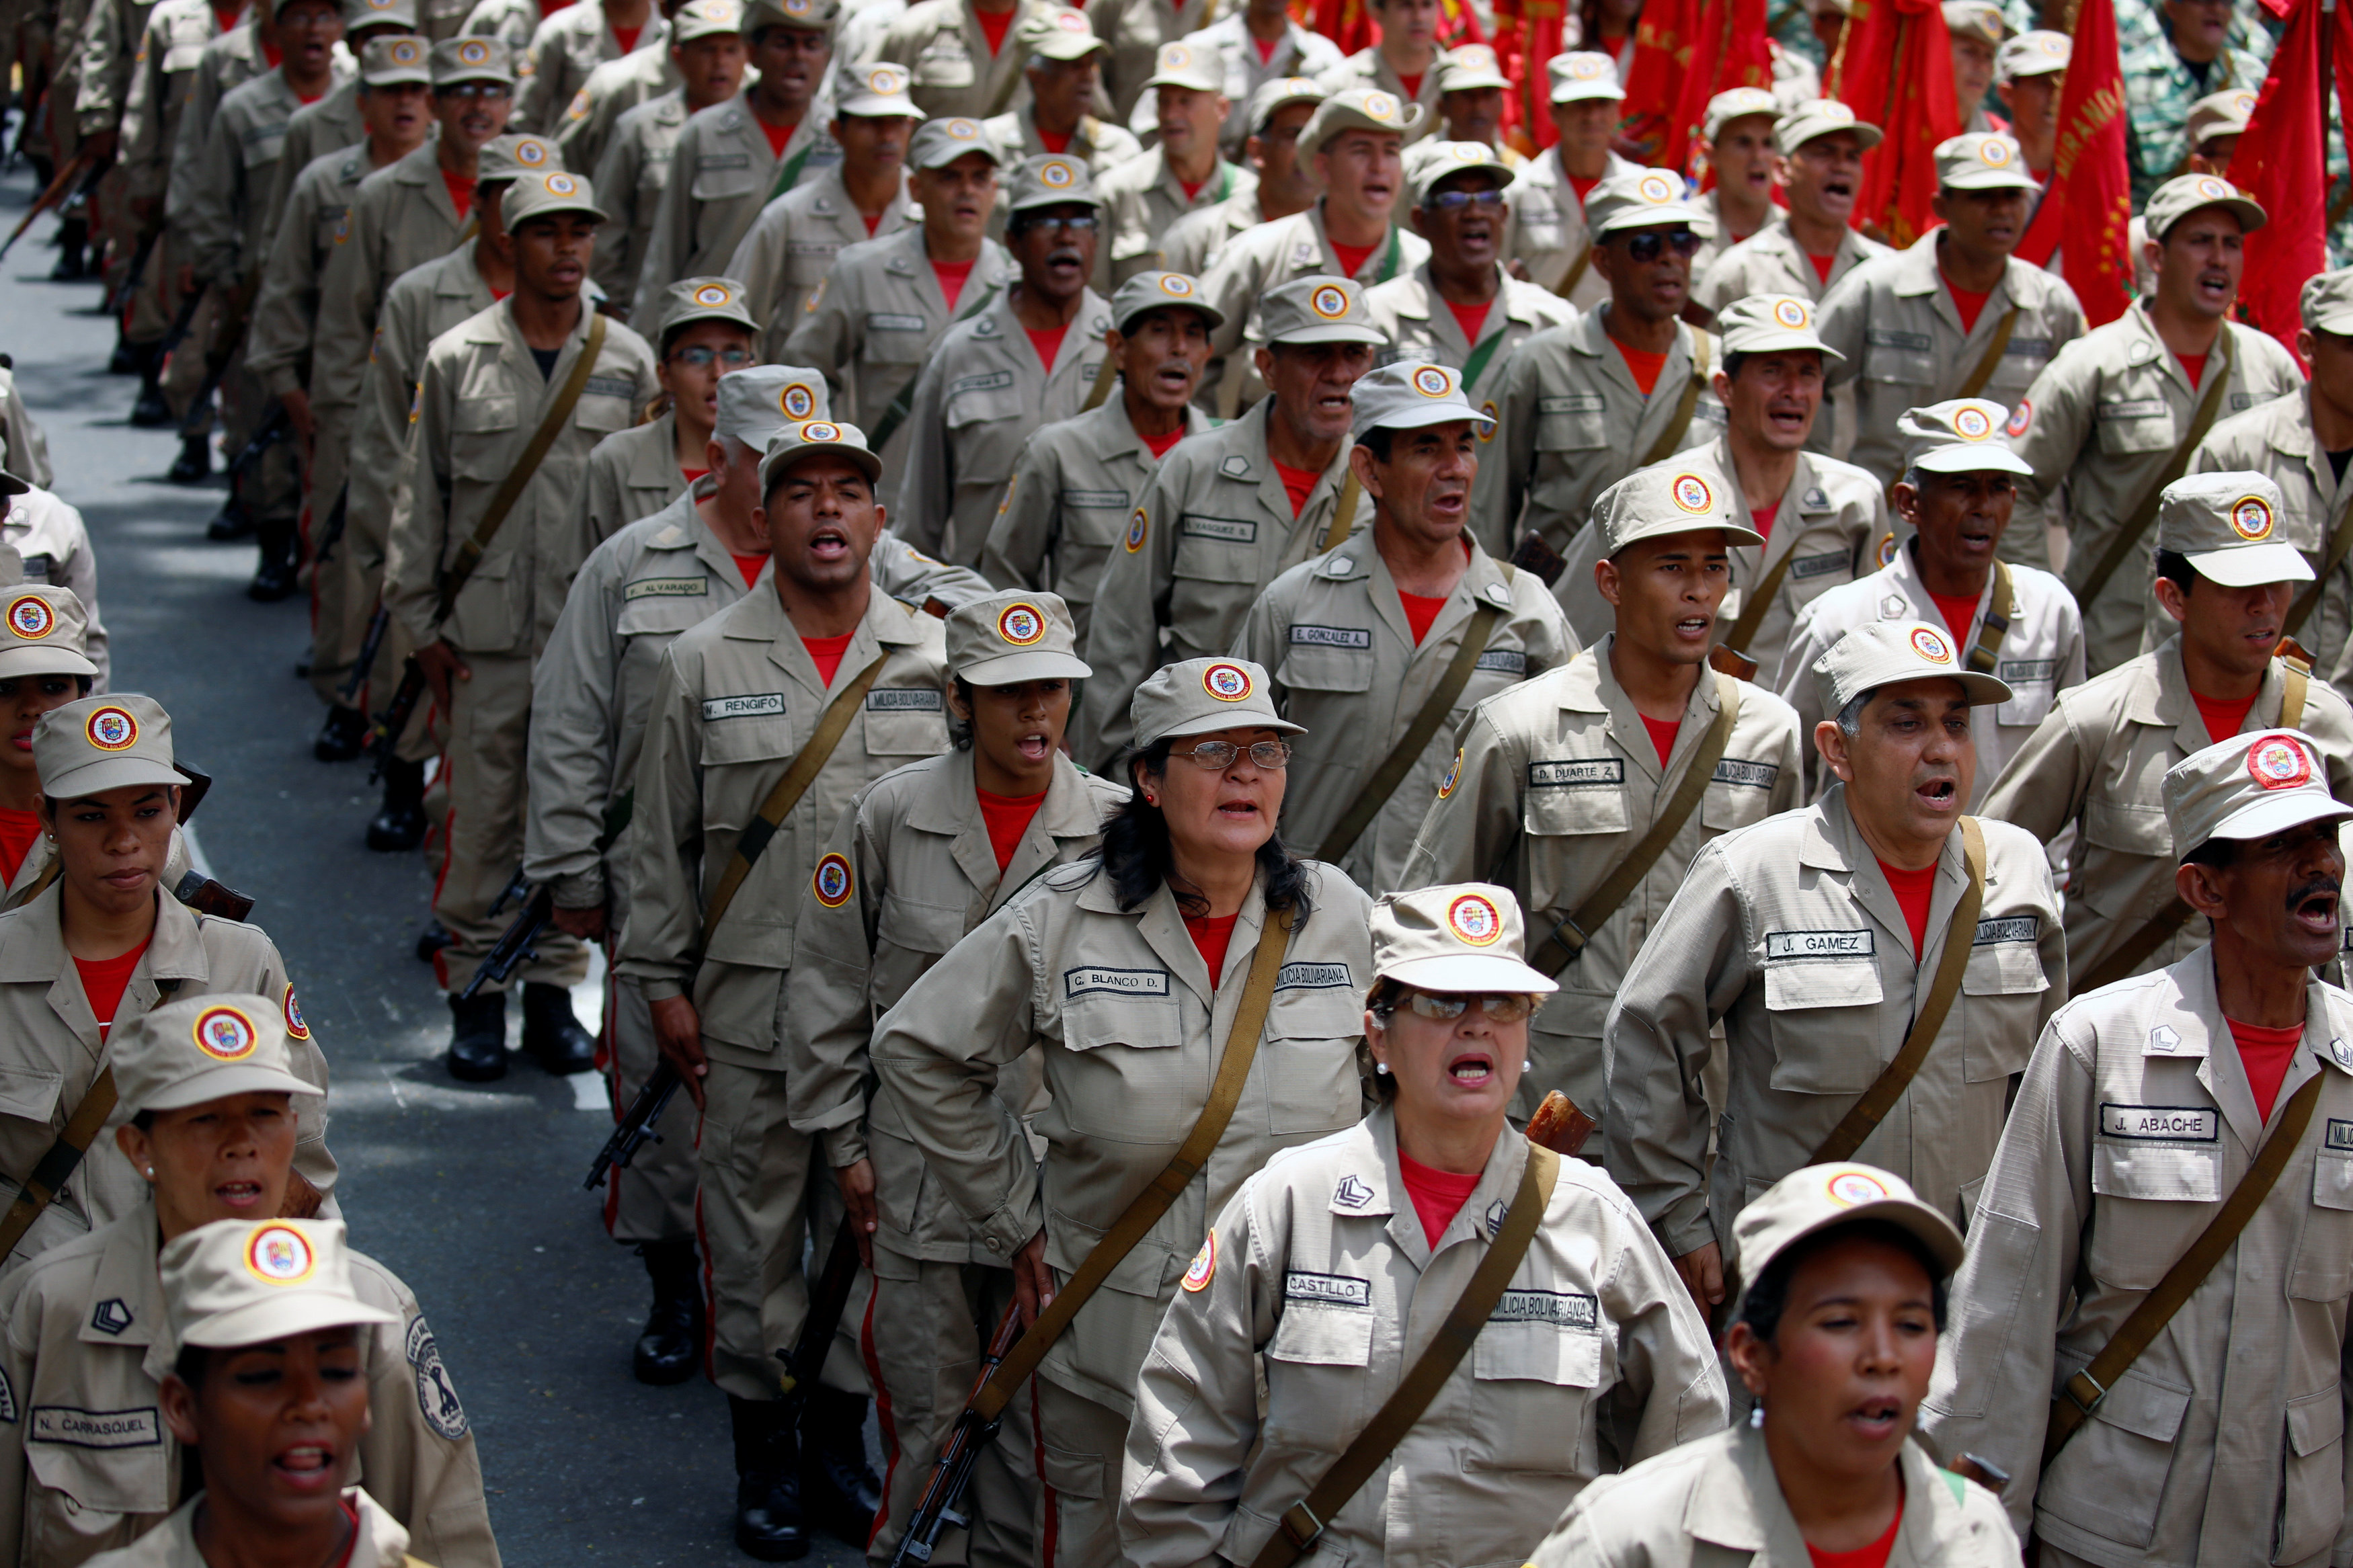 Militia members stand at attention during a ceremony with Venezuela's President Nicolas Maduro at Miraflores Palace in Caracas, Venezuela April 17, 2017. REUTERS/Marco Bello